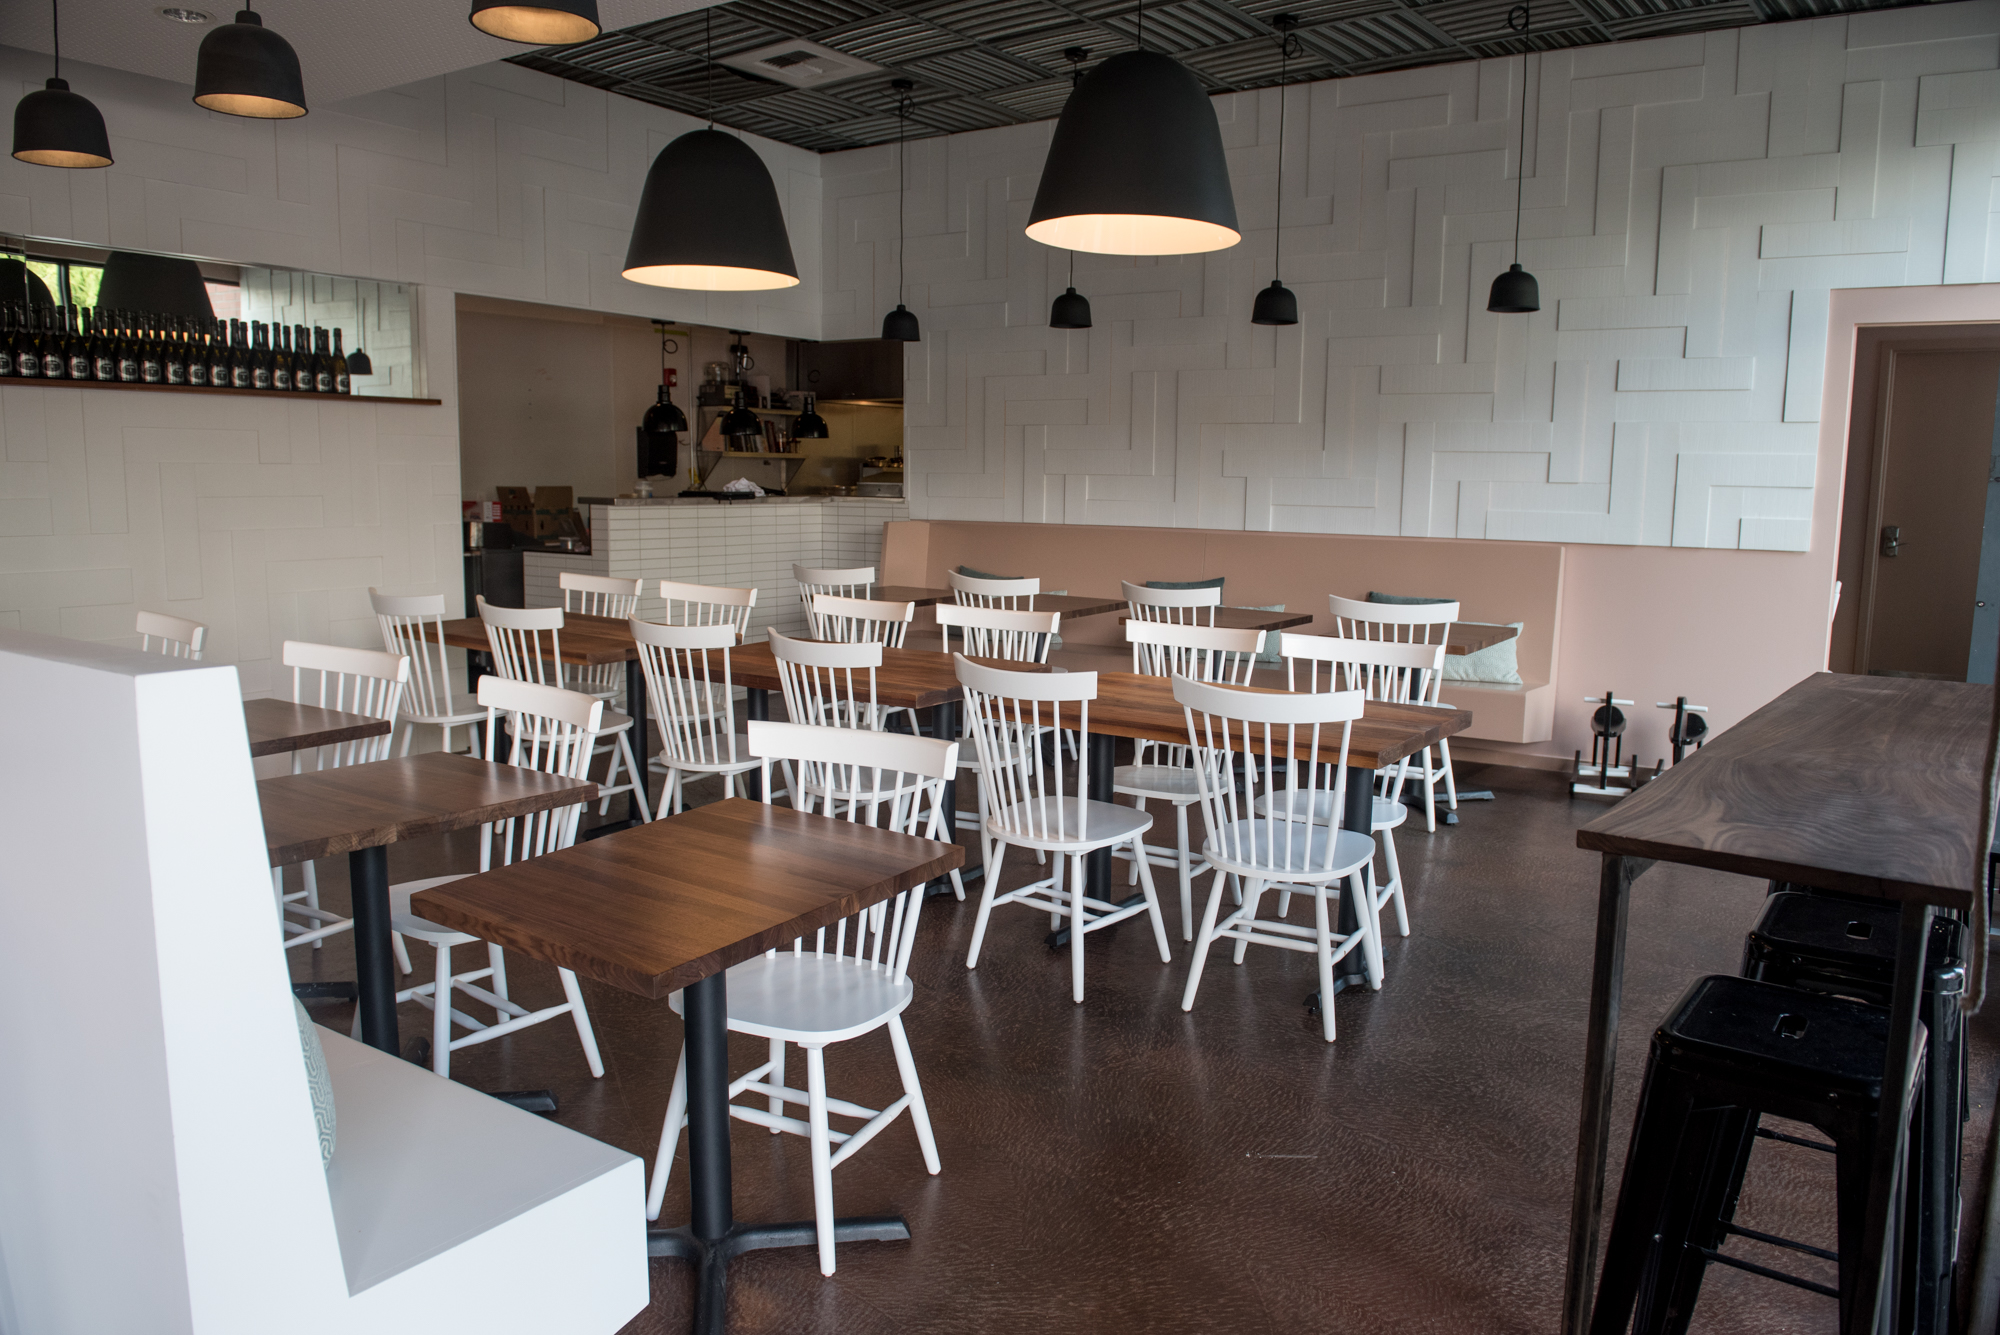 The interior of Eden Hill Provisions, with walnut wood tables, chairs, soft lighting, and a light pink accents.